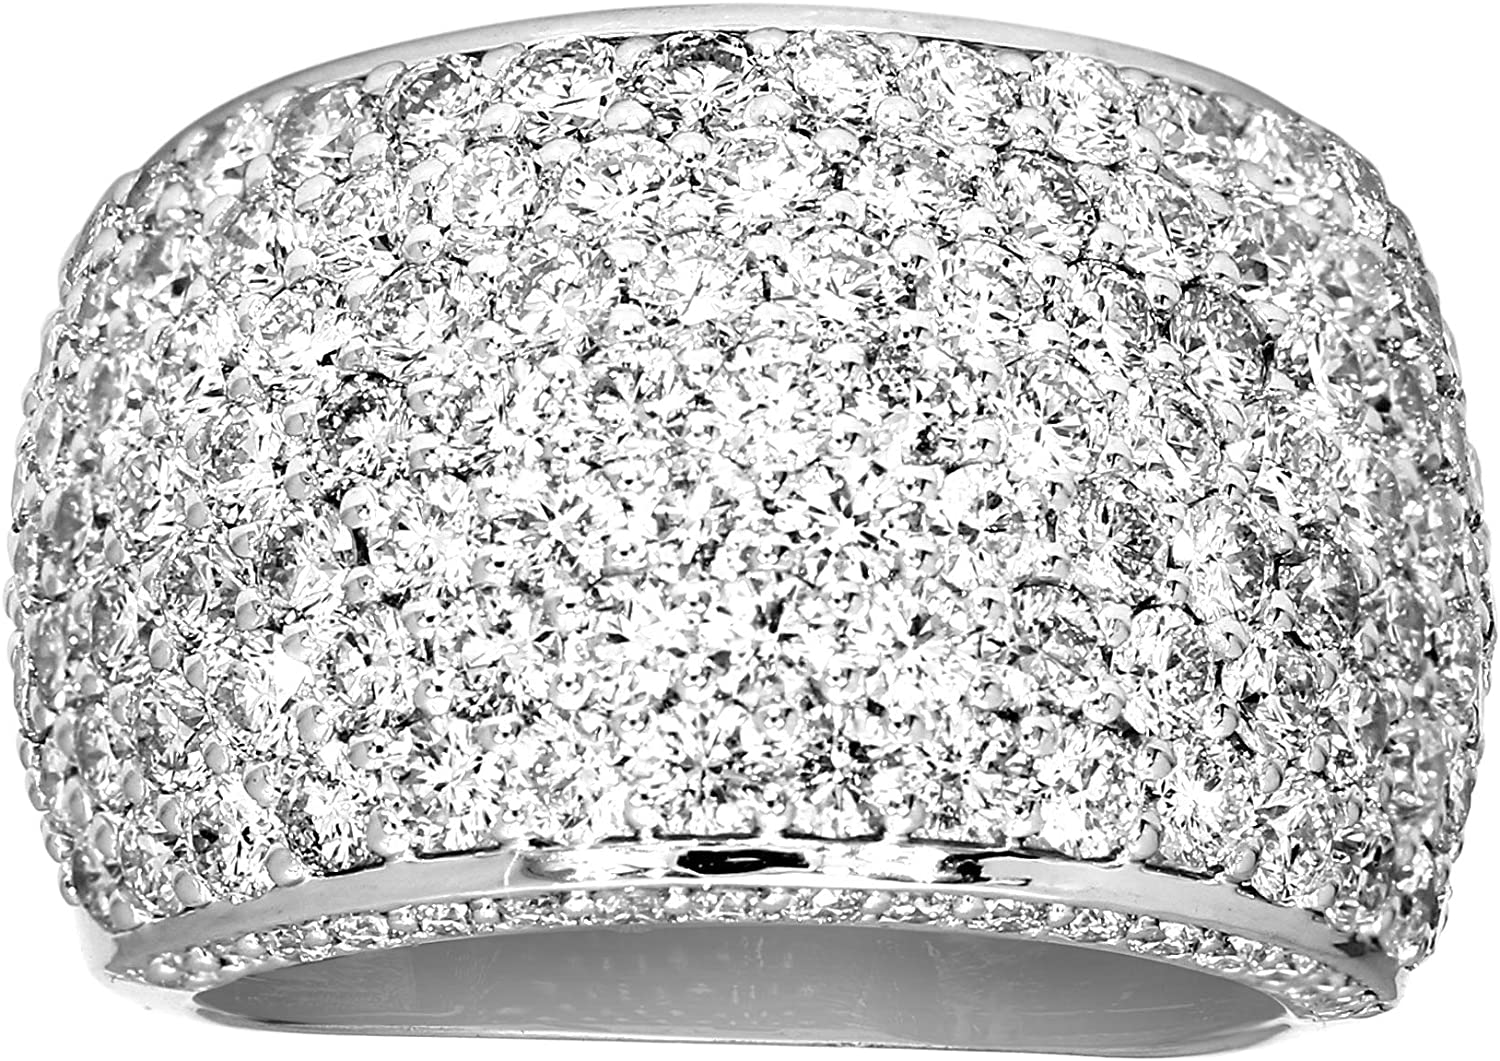 Mothers Day Gifts IGI Certified Lab Grown Diamond Rings 925 Sterling Silver 3 1/3 carat Lab Created Diamond Pave Ring For Women ( 3 1/3 CTTW, HI-SI Quality Diamond Gifts for Mom)